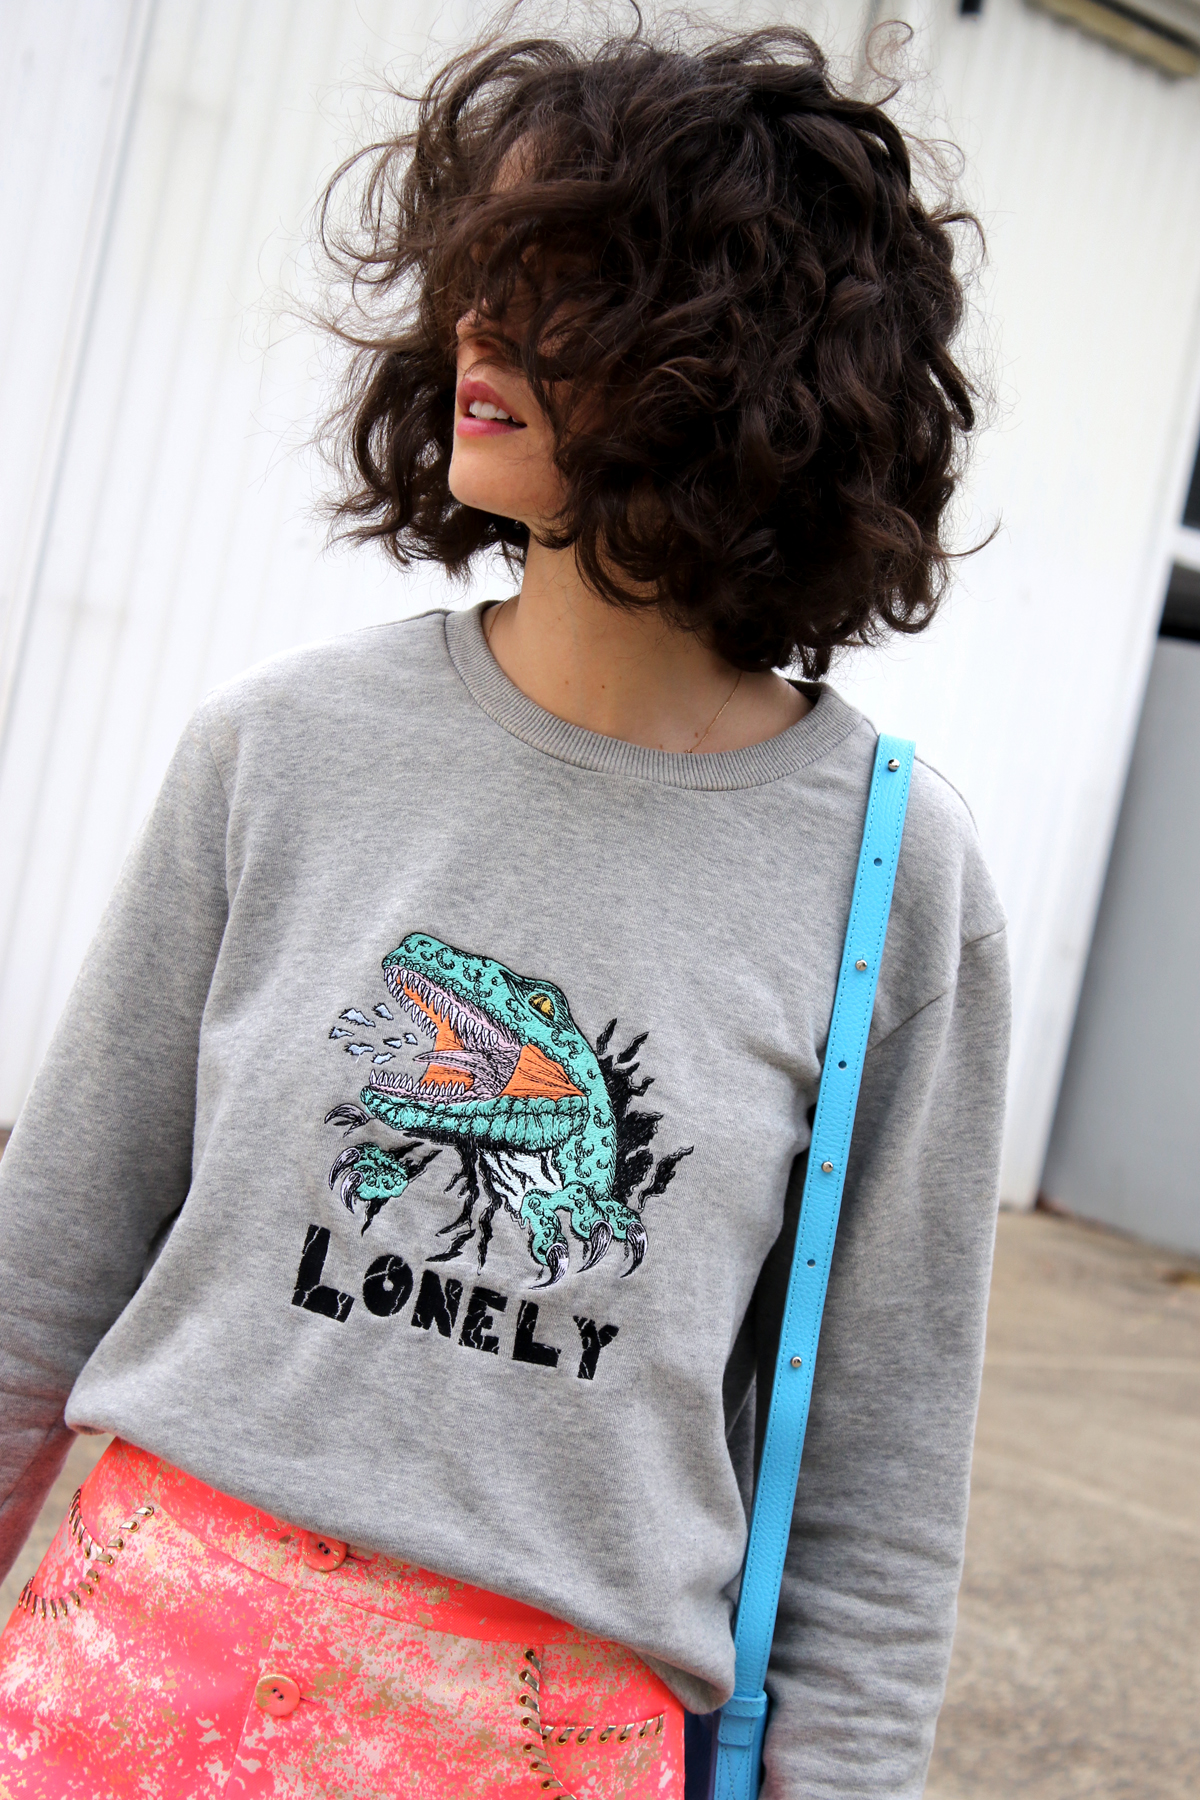 Lonely label dinosaur sweater